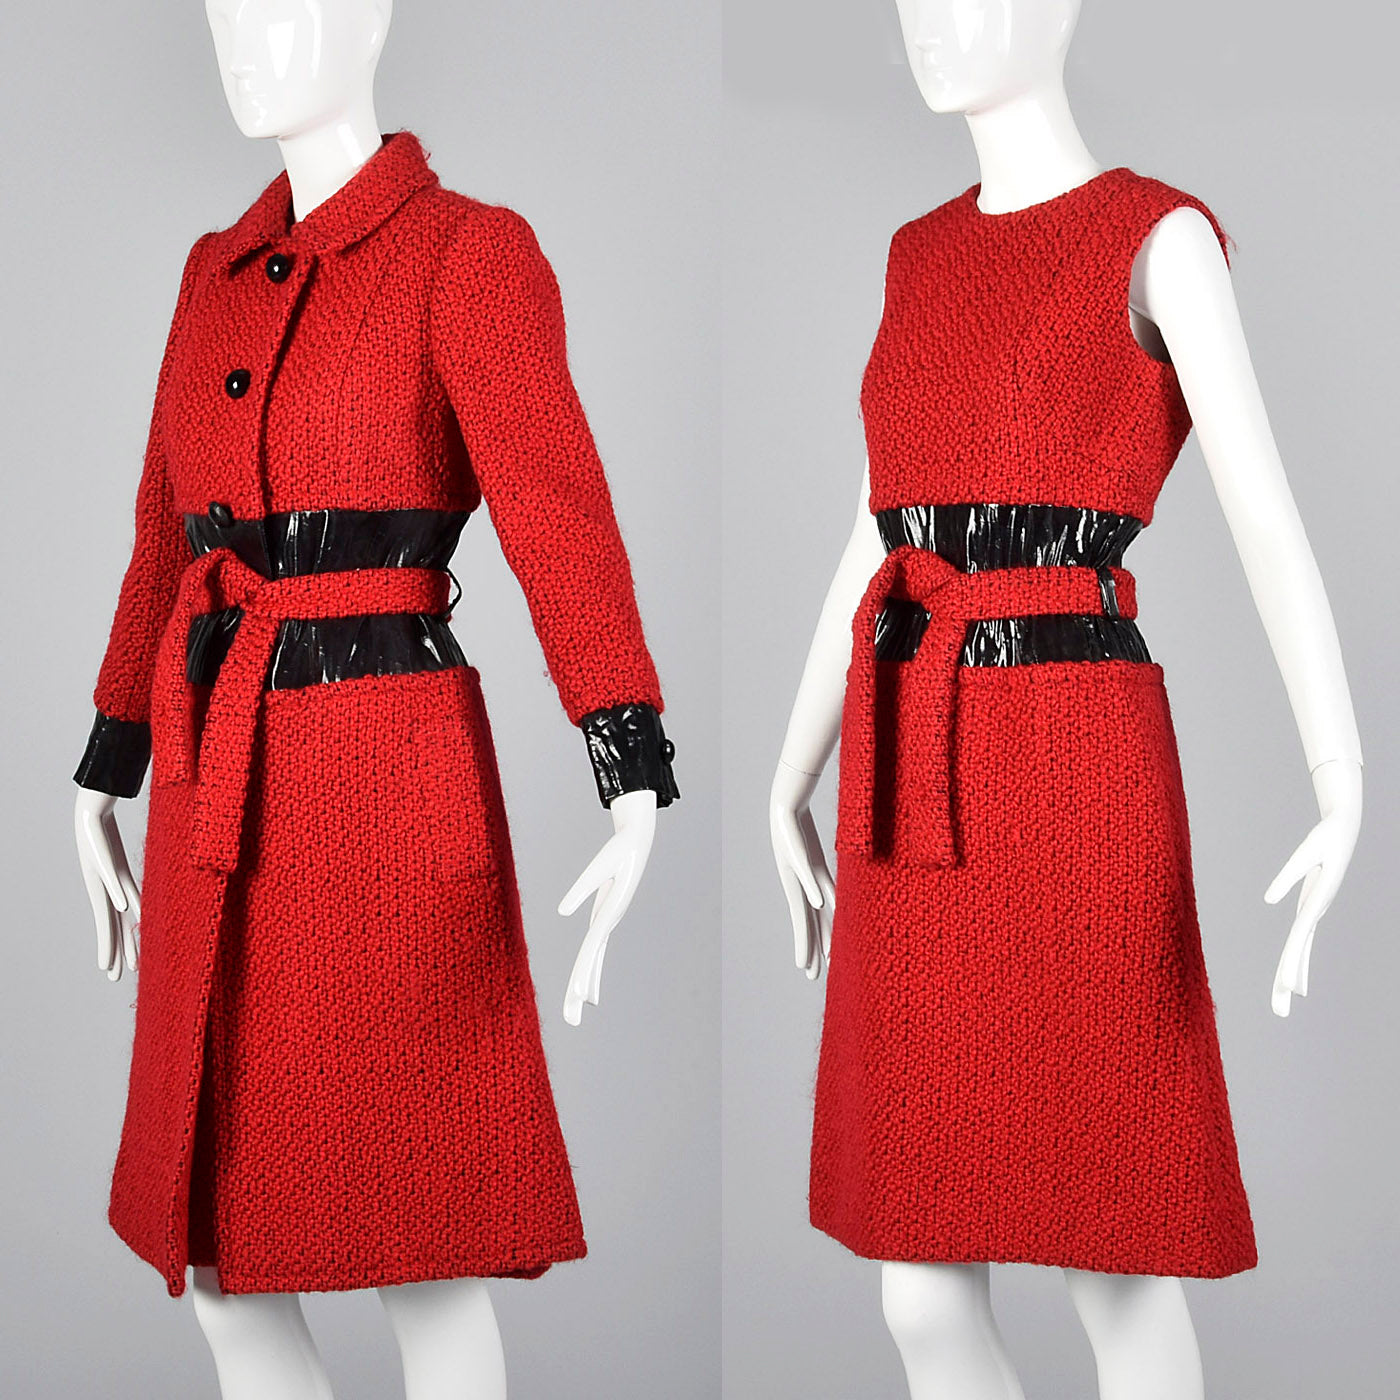 1960s Via Veneto Couture Boutique Red Tweed Space Age Dress & Coat Set